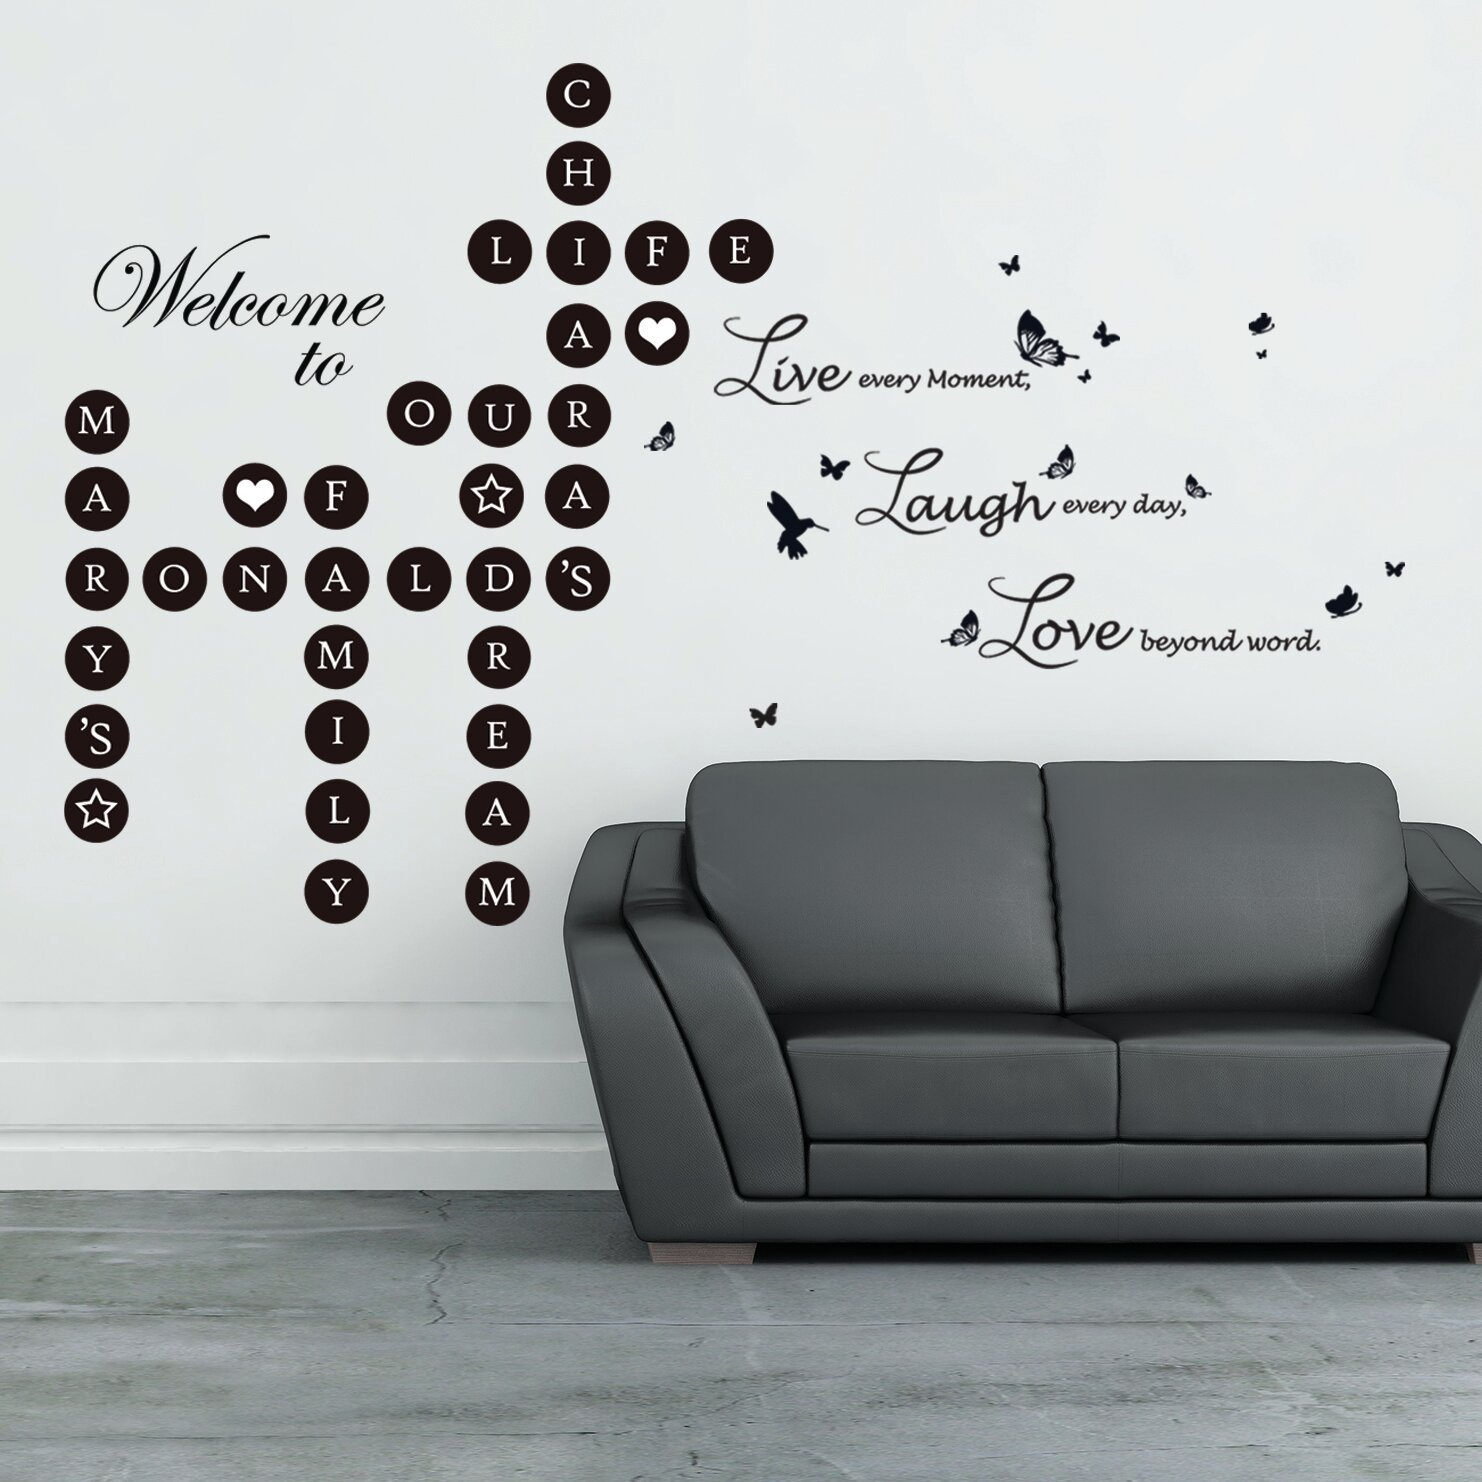 Walplus Word Puzzles And Live Laugh Love Wall Decal U0026 Reviews | Wayfair